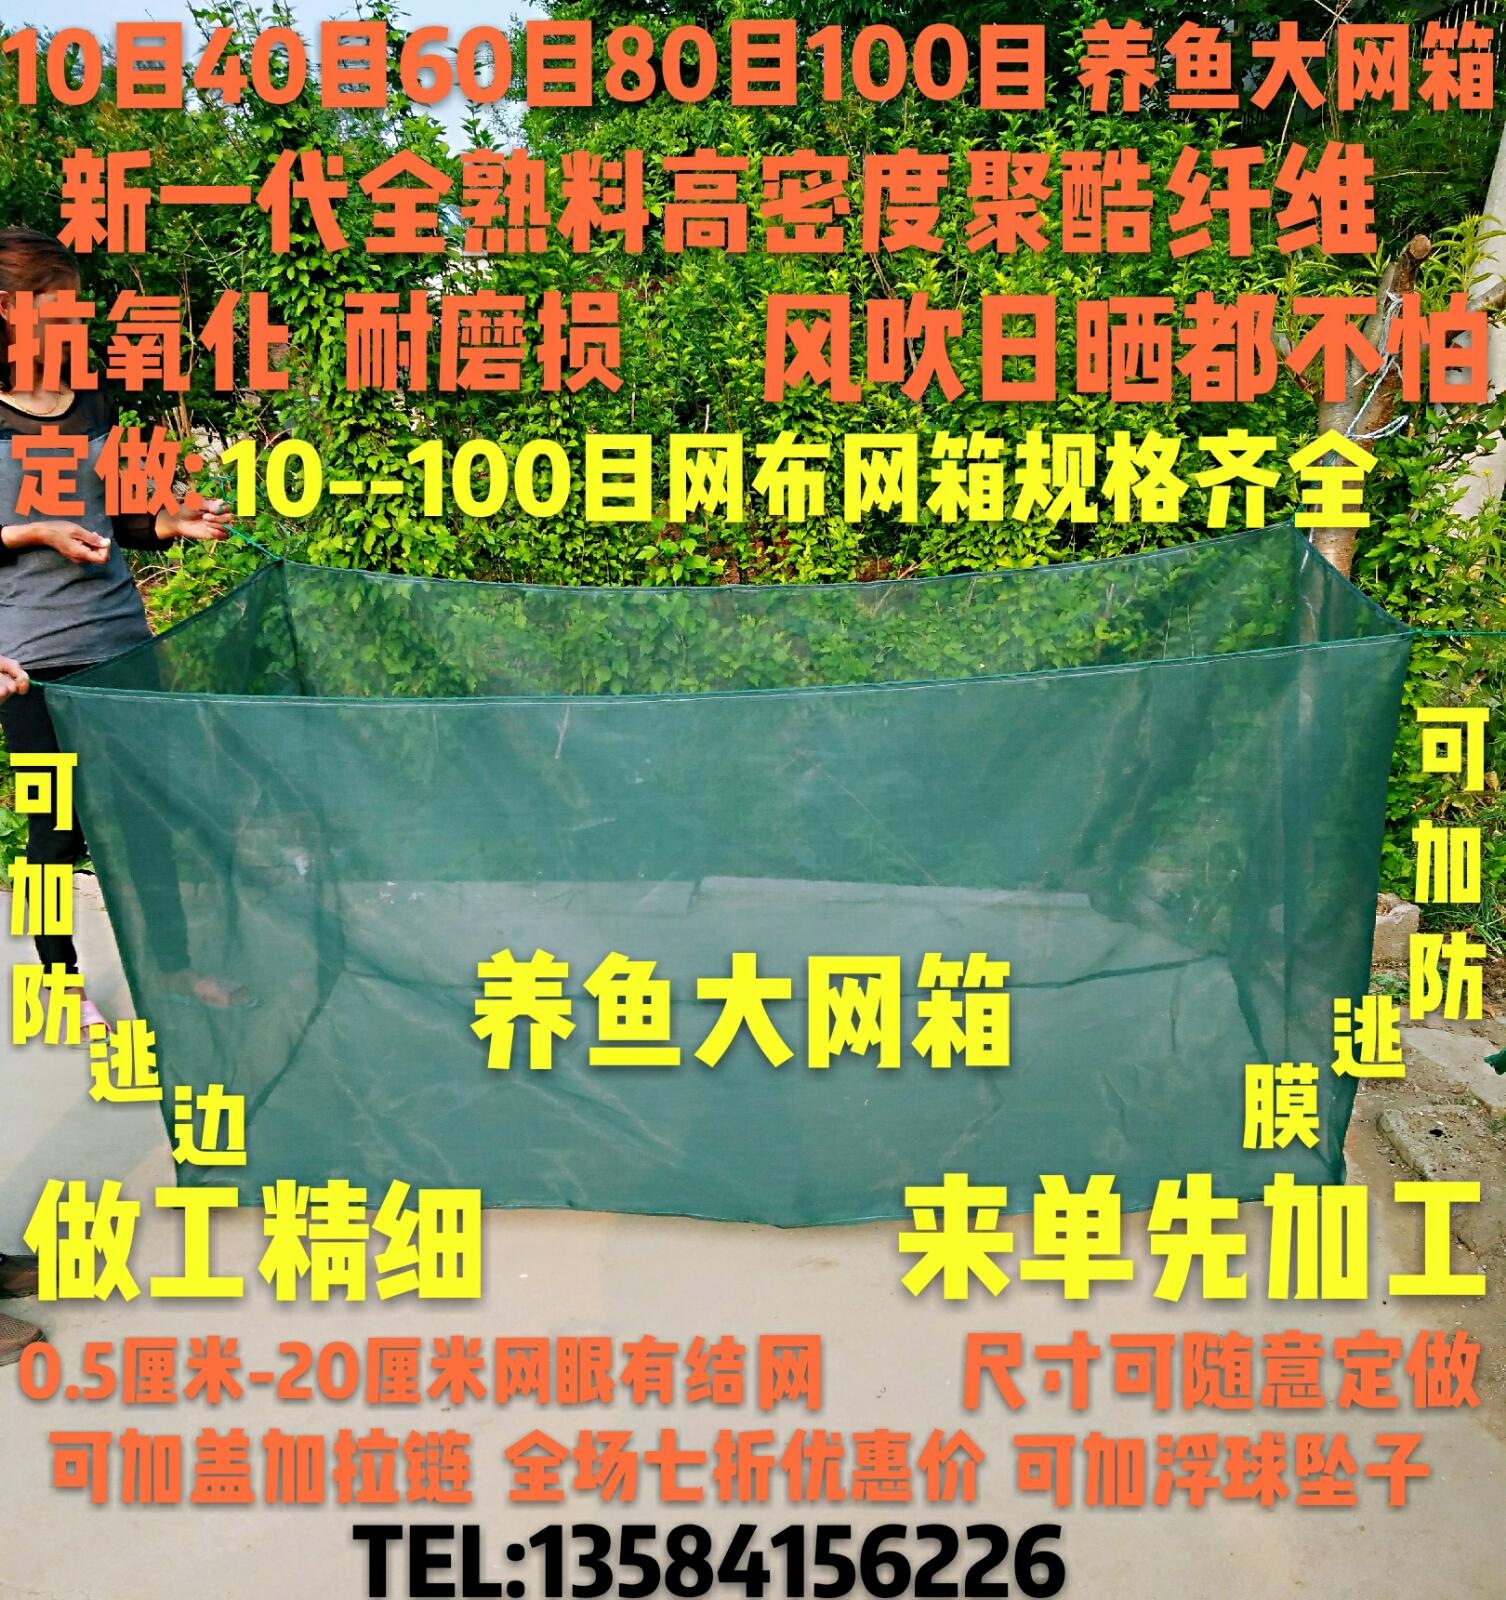 10 mesh capped thickened nets mesh loach cages Huangqi cages fish cages custom breeding cages fishing nets